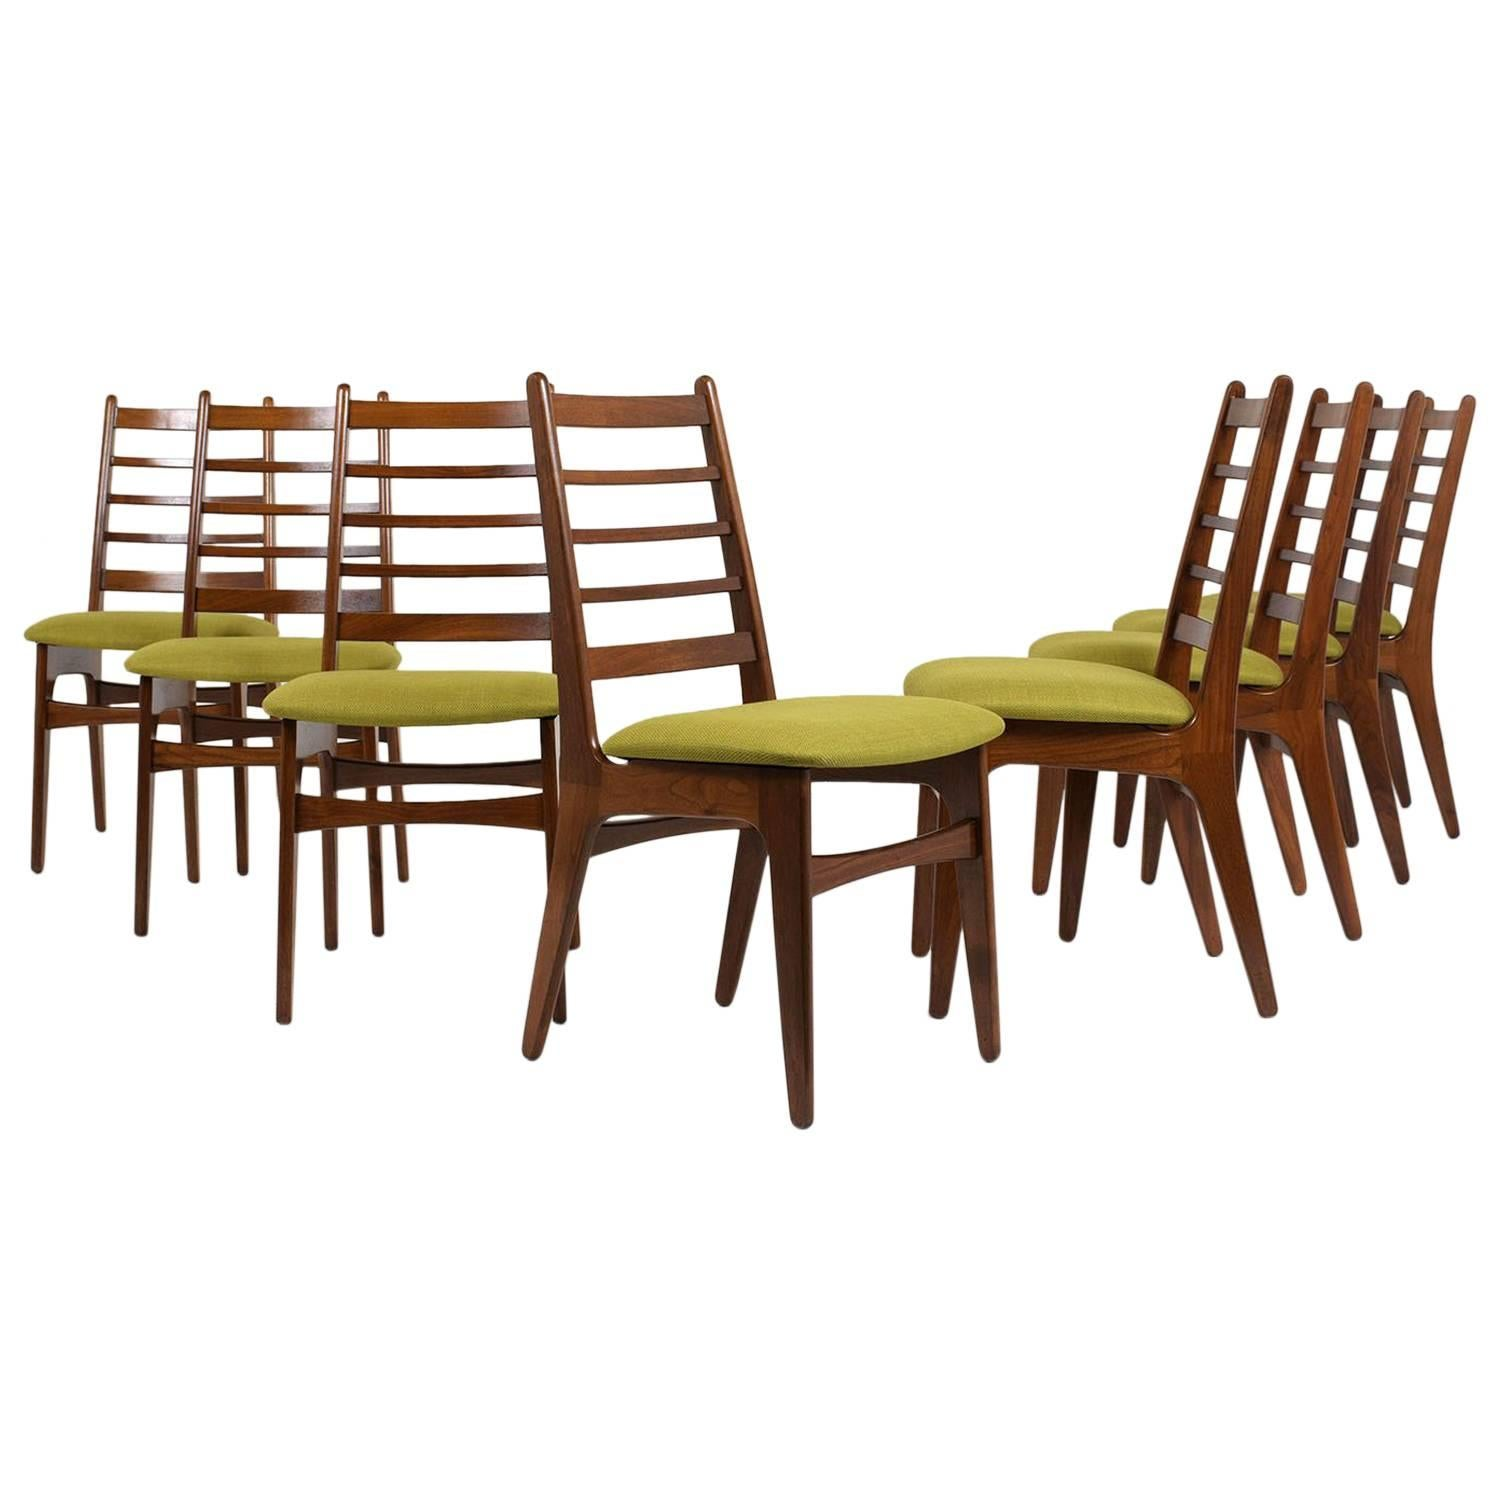 Set Of Eight Danish Teak Wood Dining Room Chairs, Circa 1960 For Sale